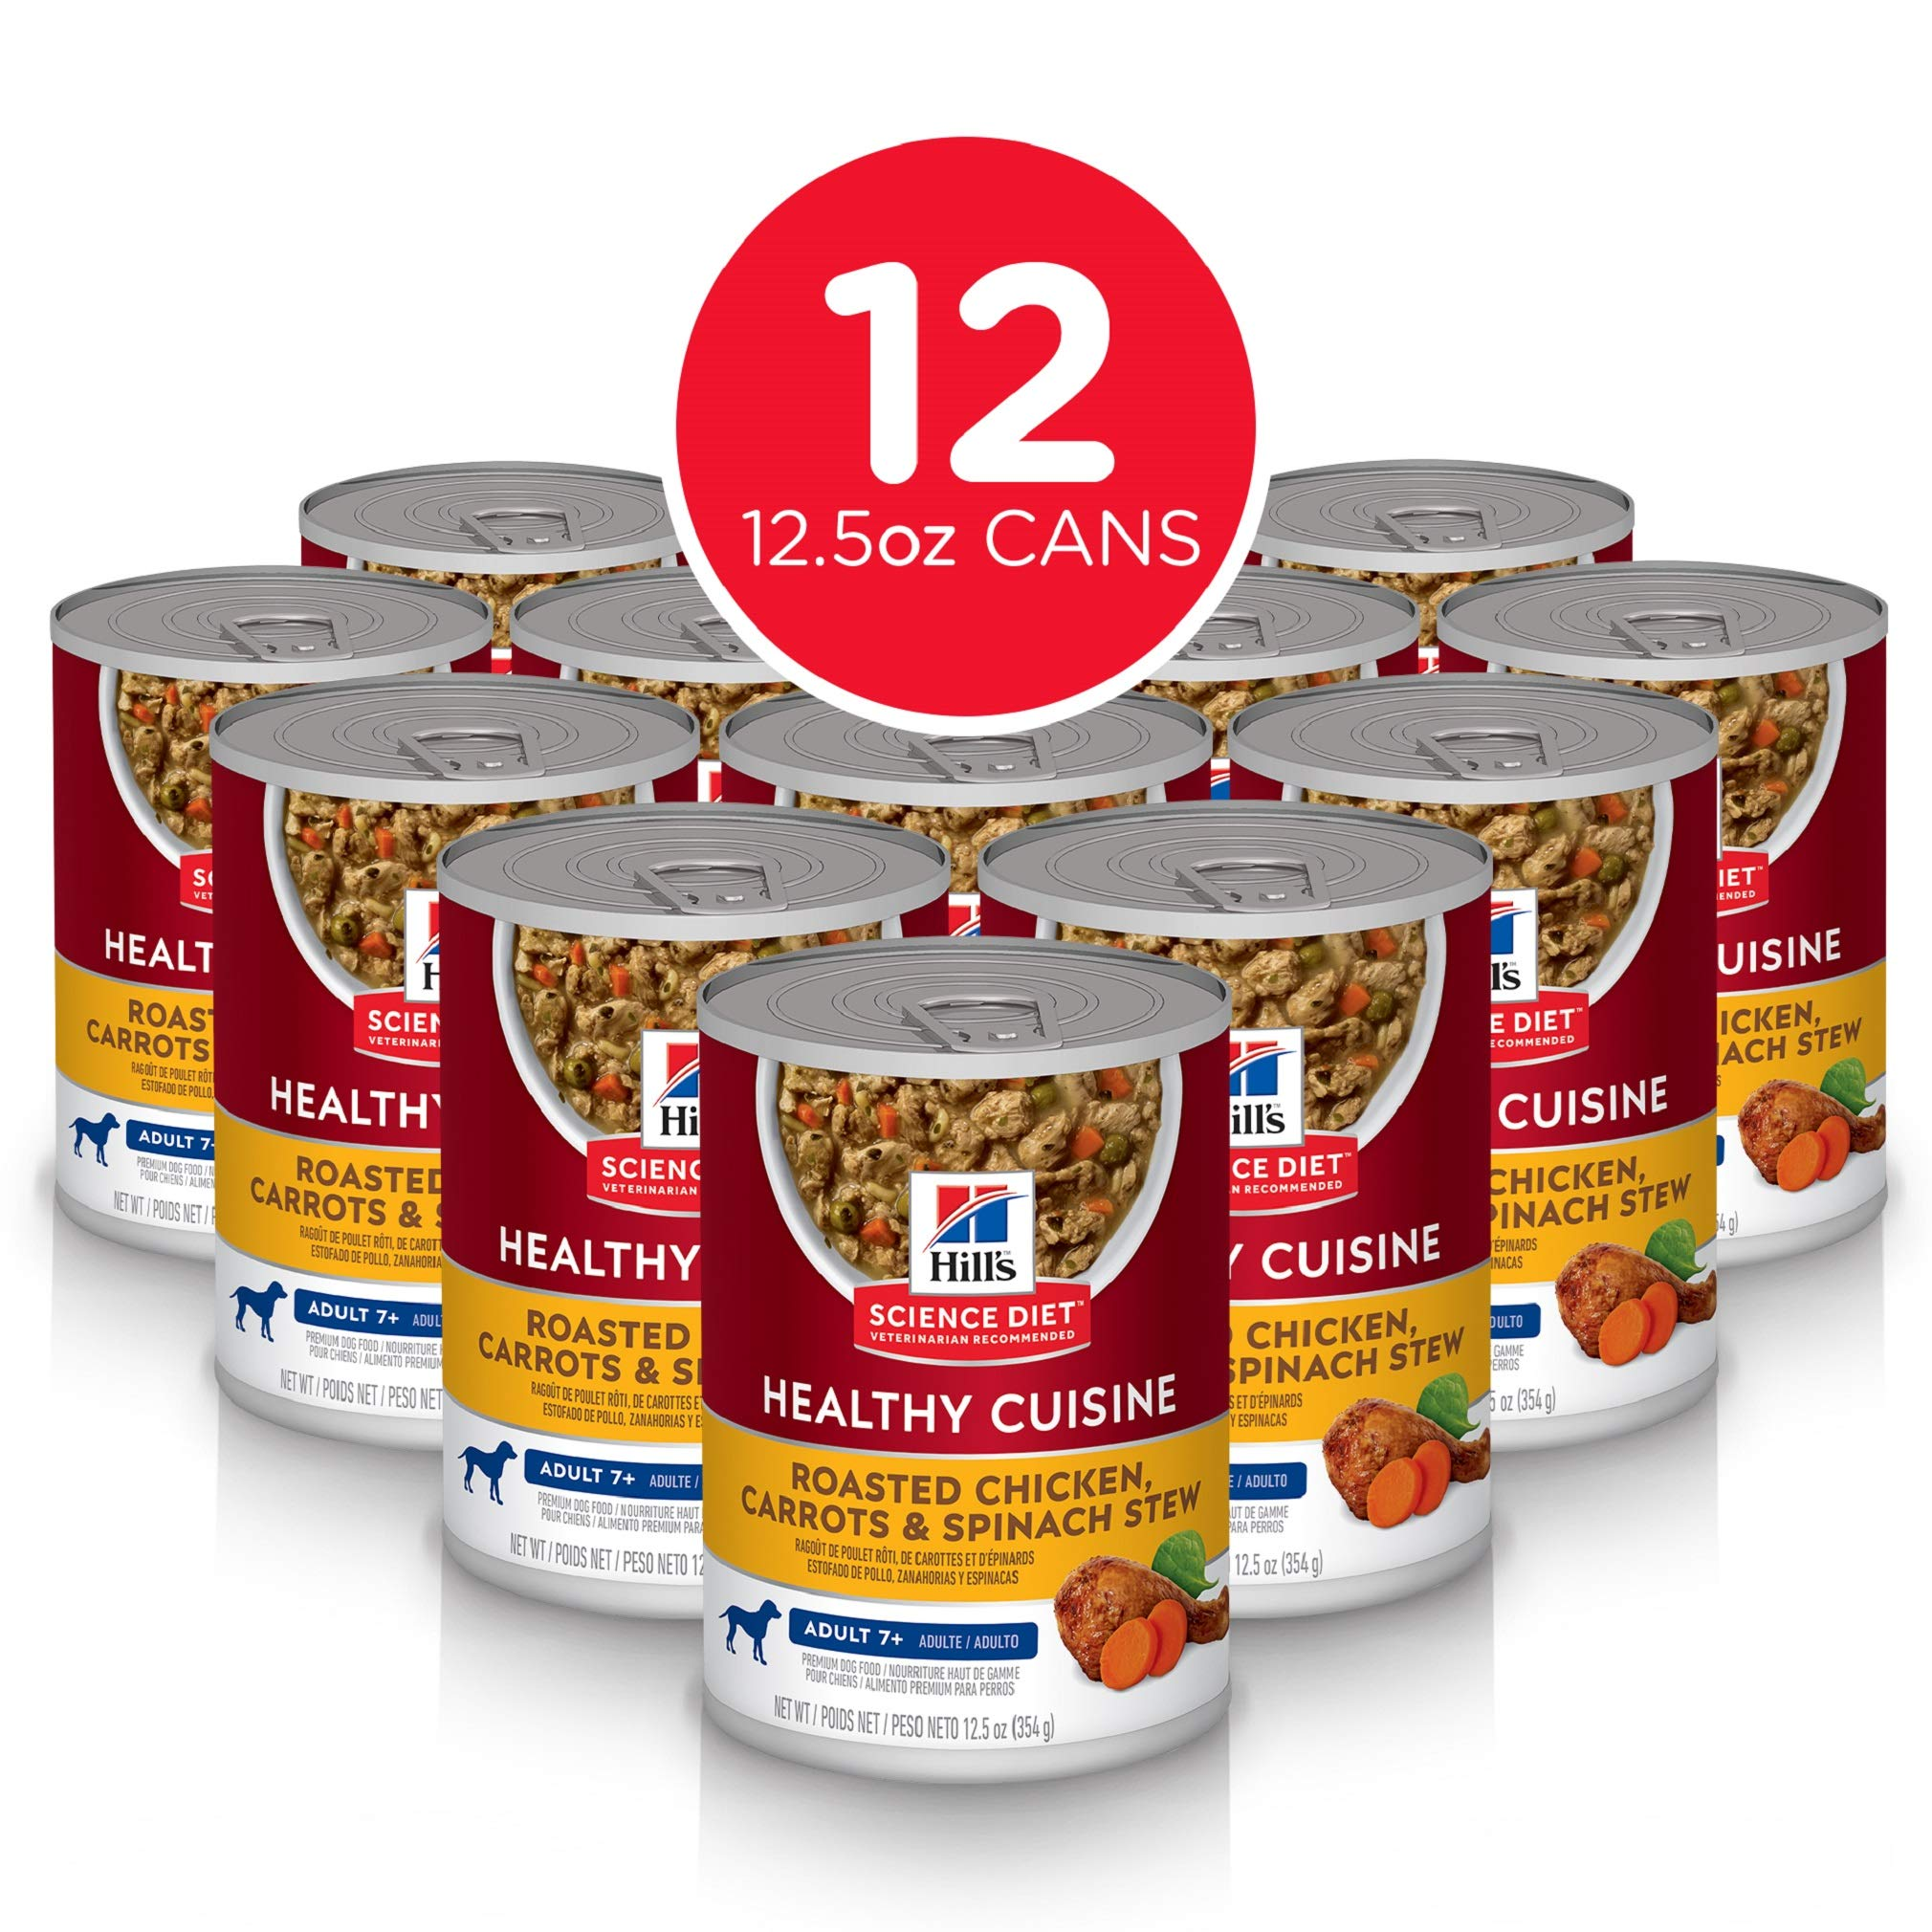 Hill's Science Diet Wet Dog Food, Adult 7+ for Senior Dogs, Healthy Cuisine, Roasted Chicken, Carrots, & Spinach Recipe, 12.5 oz Cans, 12 Pack by Hill's Science Diet